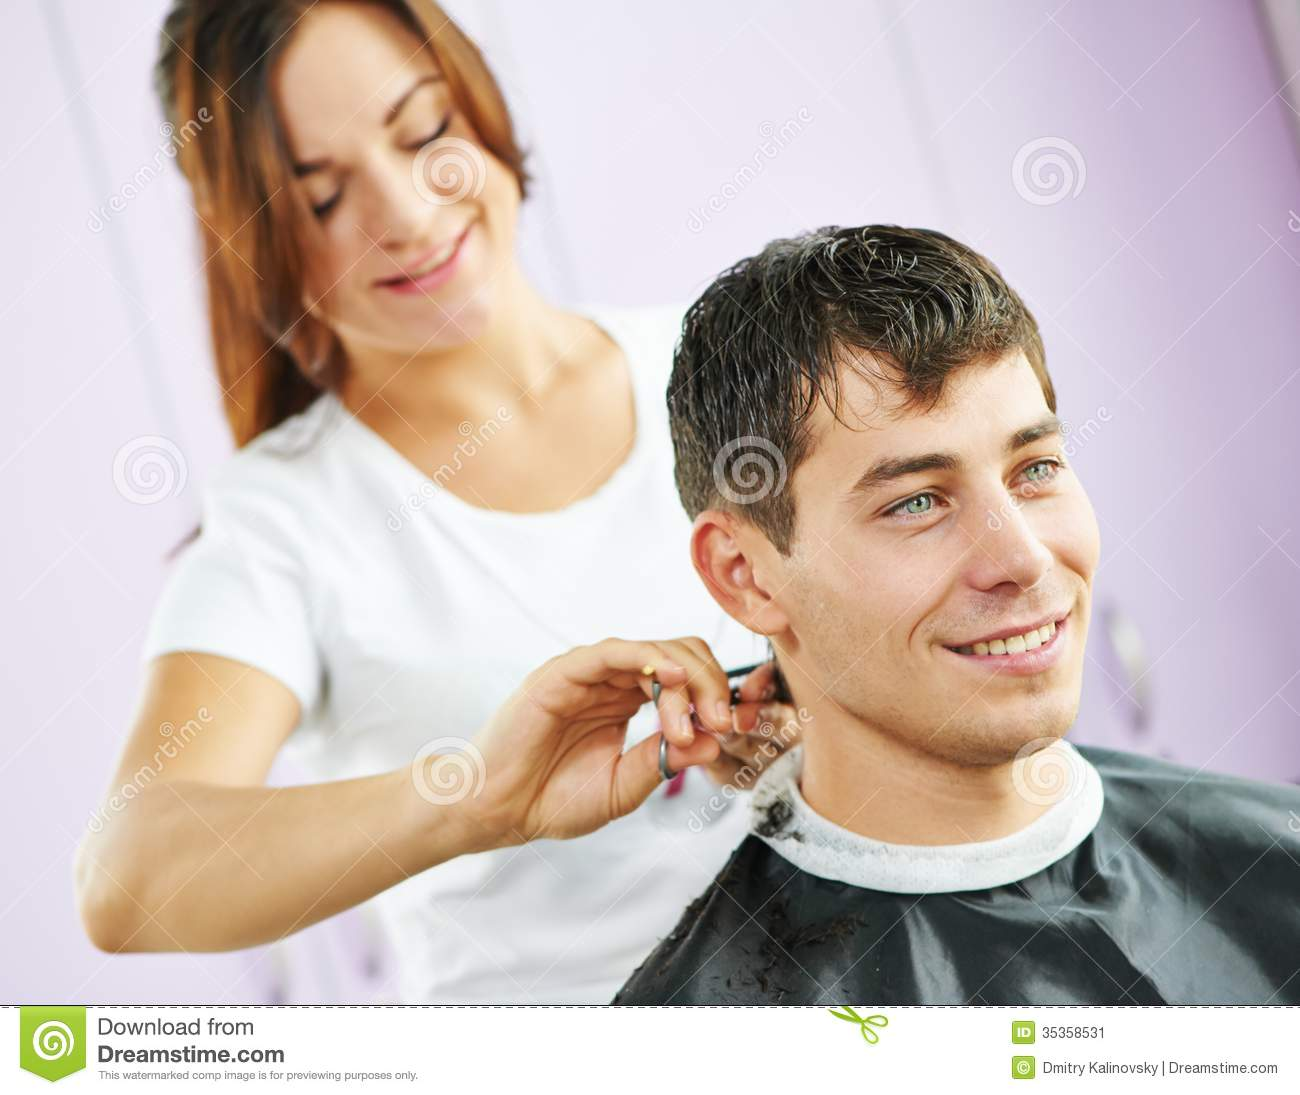 Male Hairdresser At Work Stock Image - Image: 35358531